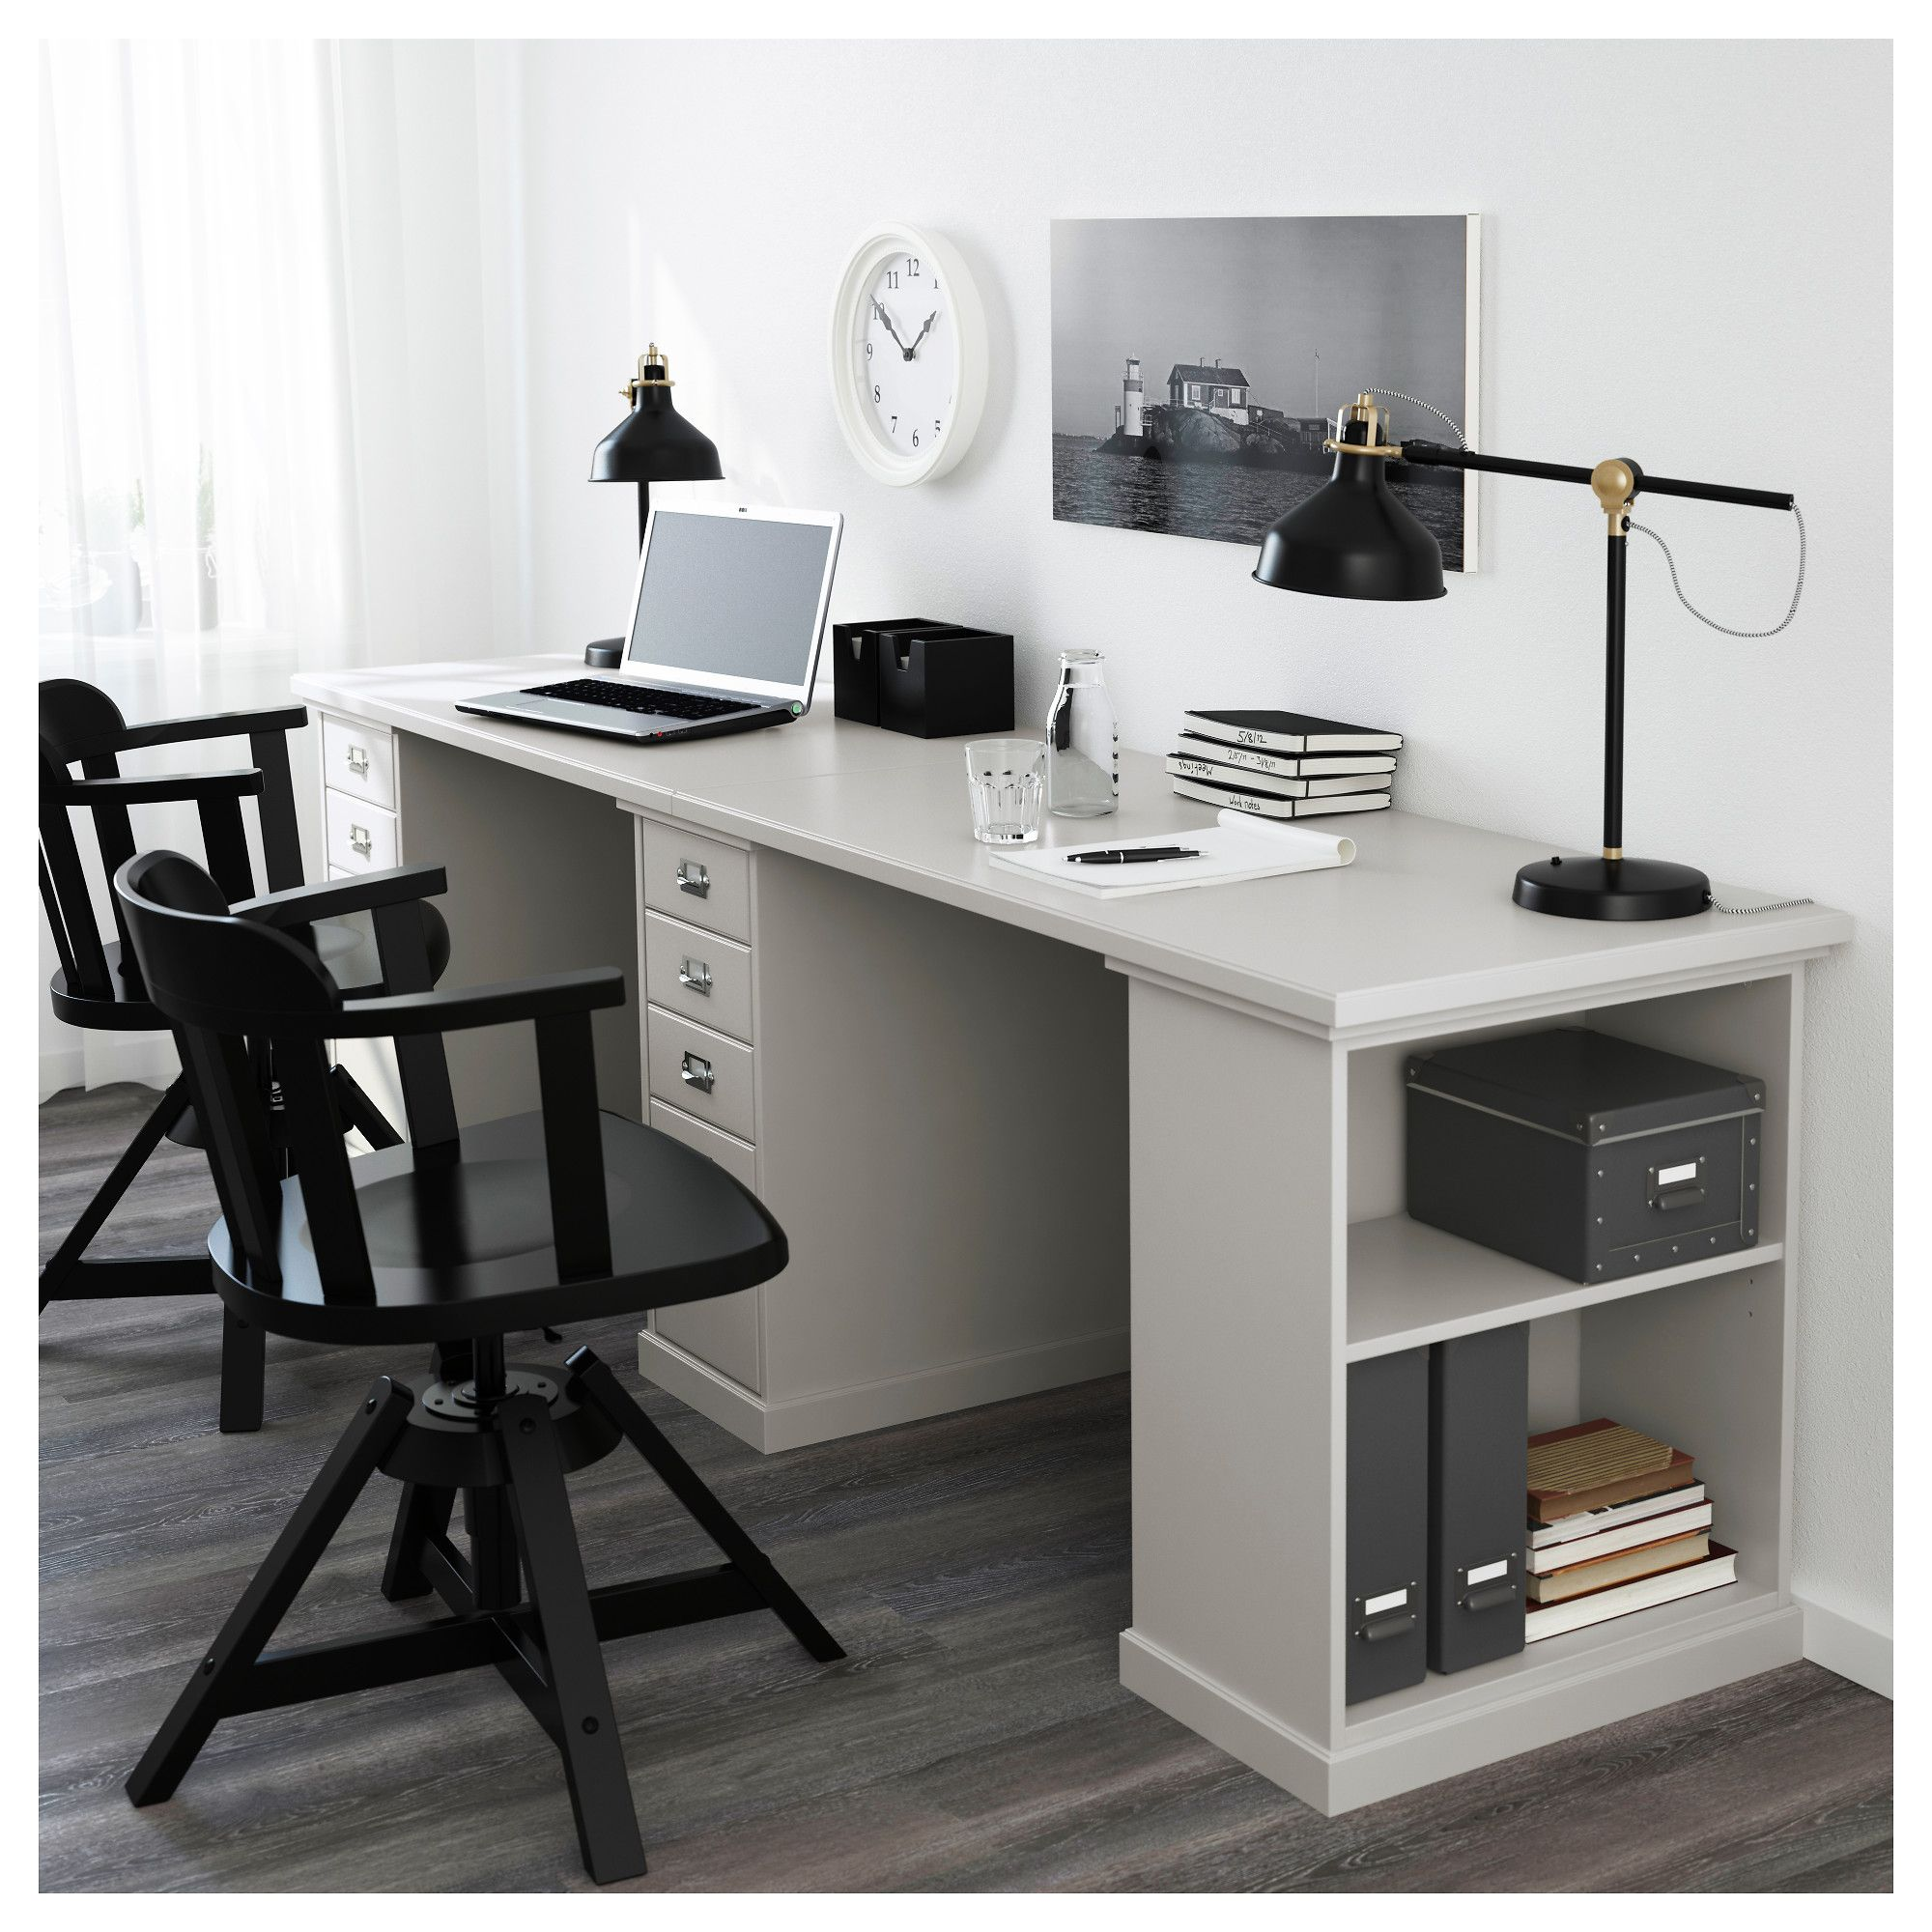 Klimpen Table Gray Light Gray Ikea Canada Ikea Home Office Furniture Home Office Design Cheap Office Furniture